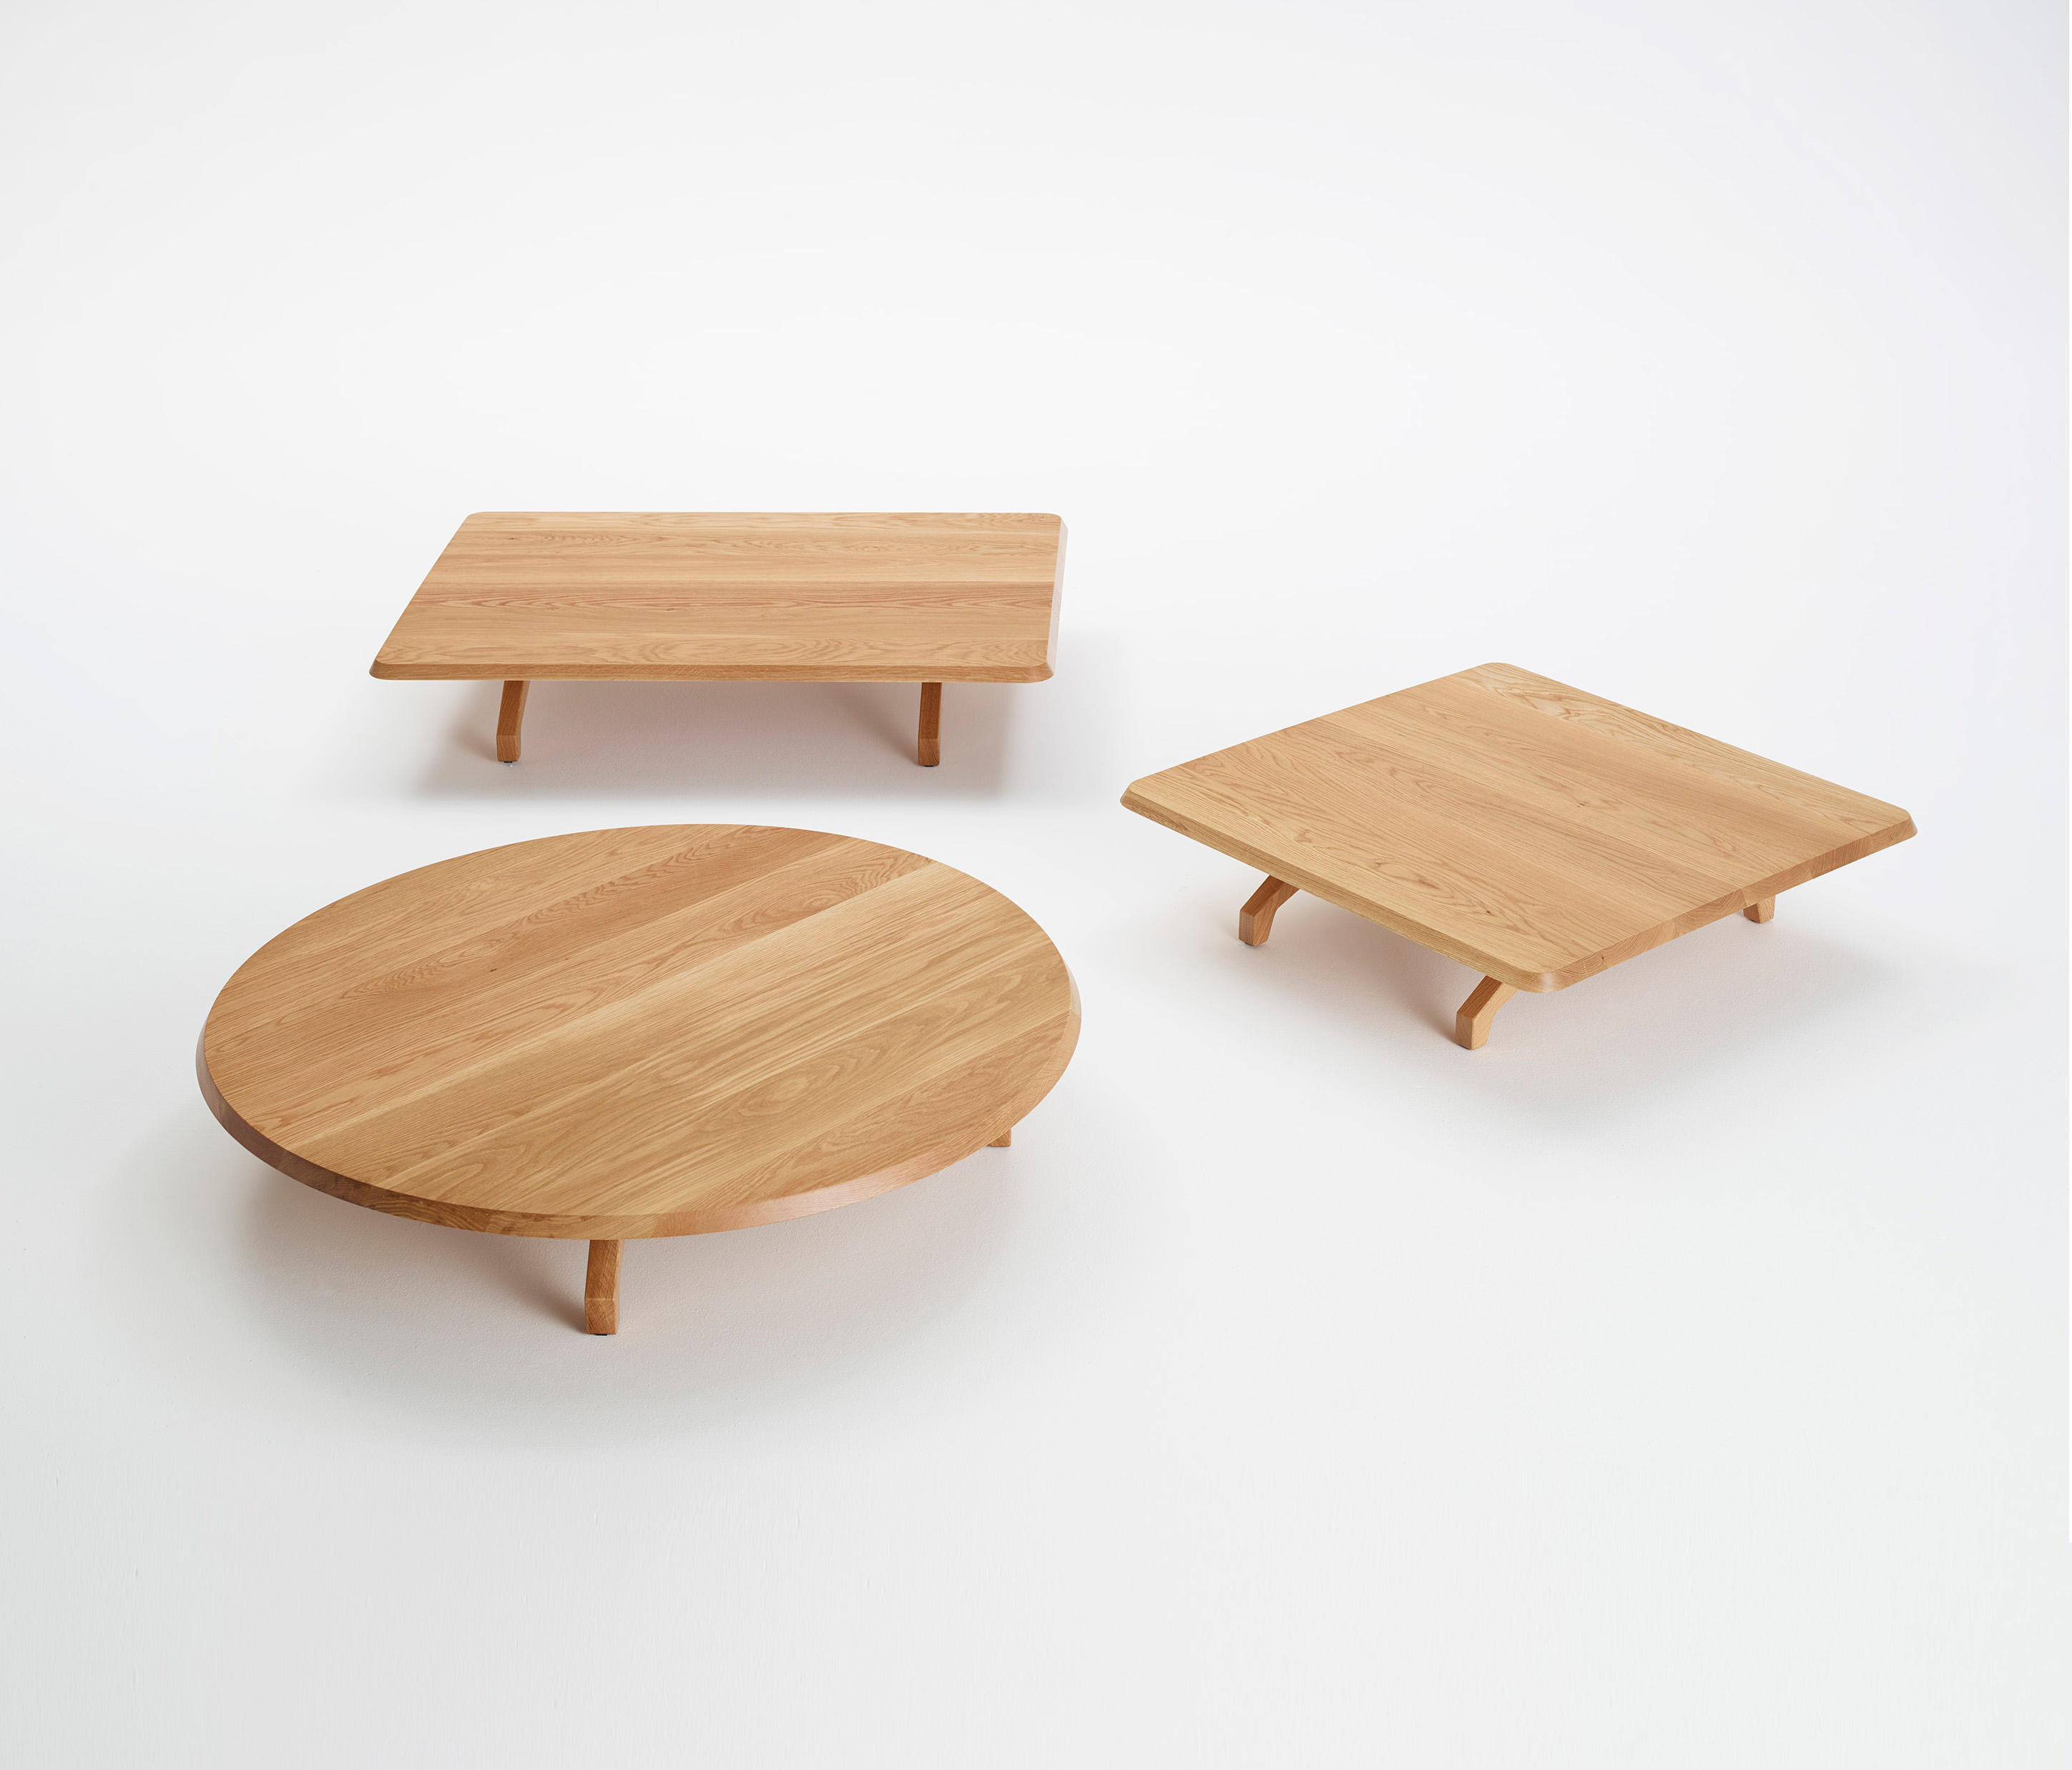 sofa gallery pty ltd table with baskets bomba lounge sofas from schiavello international